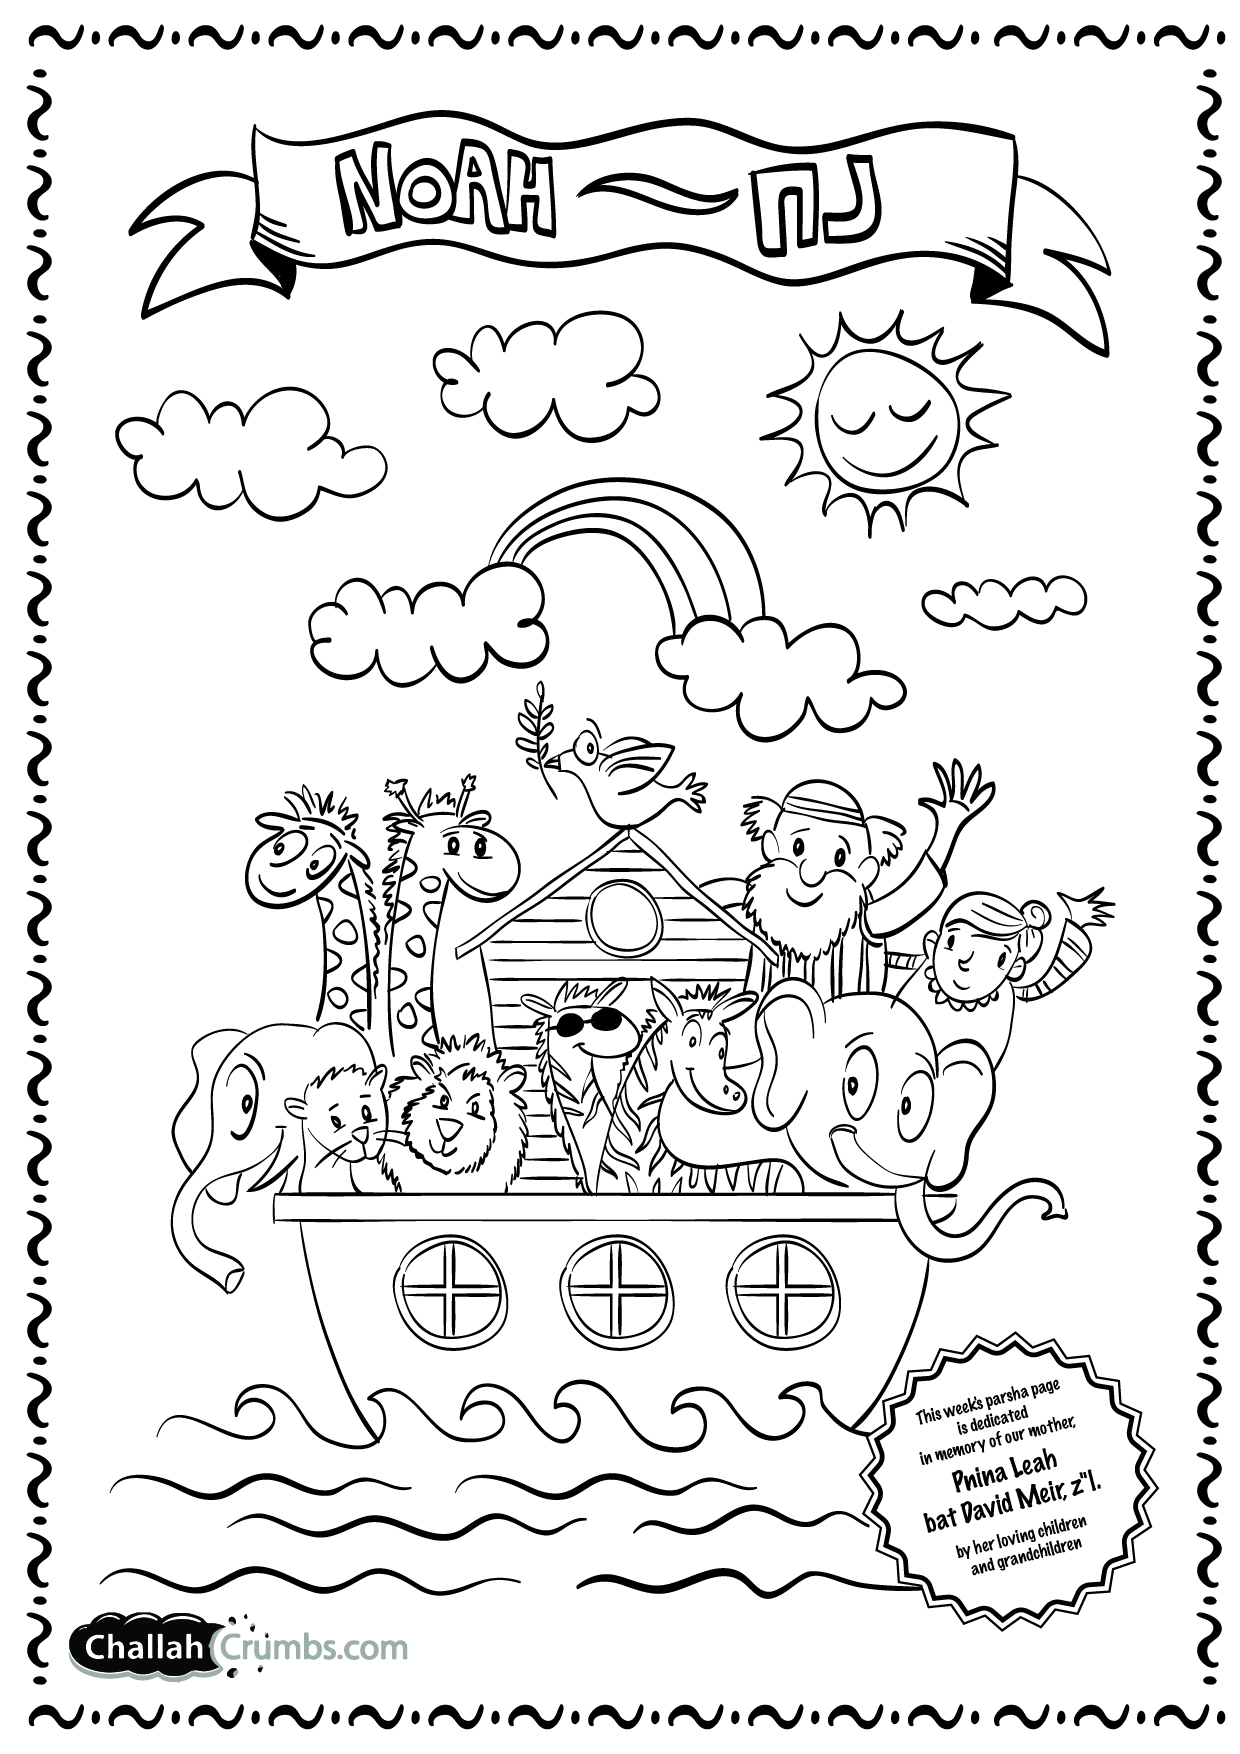 Uncategorized Torah Coloring Pages parshat noach coloring page click on picture to print challah print